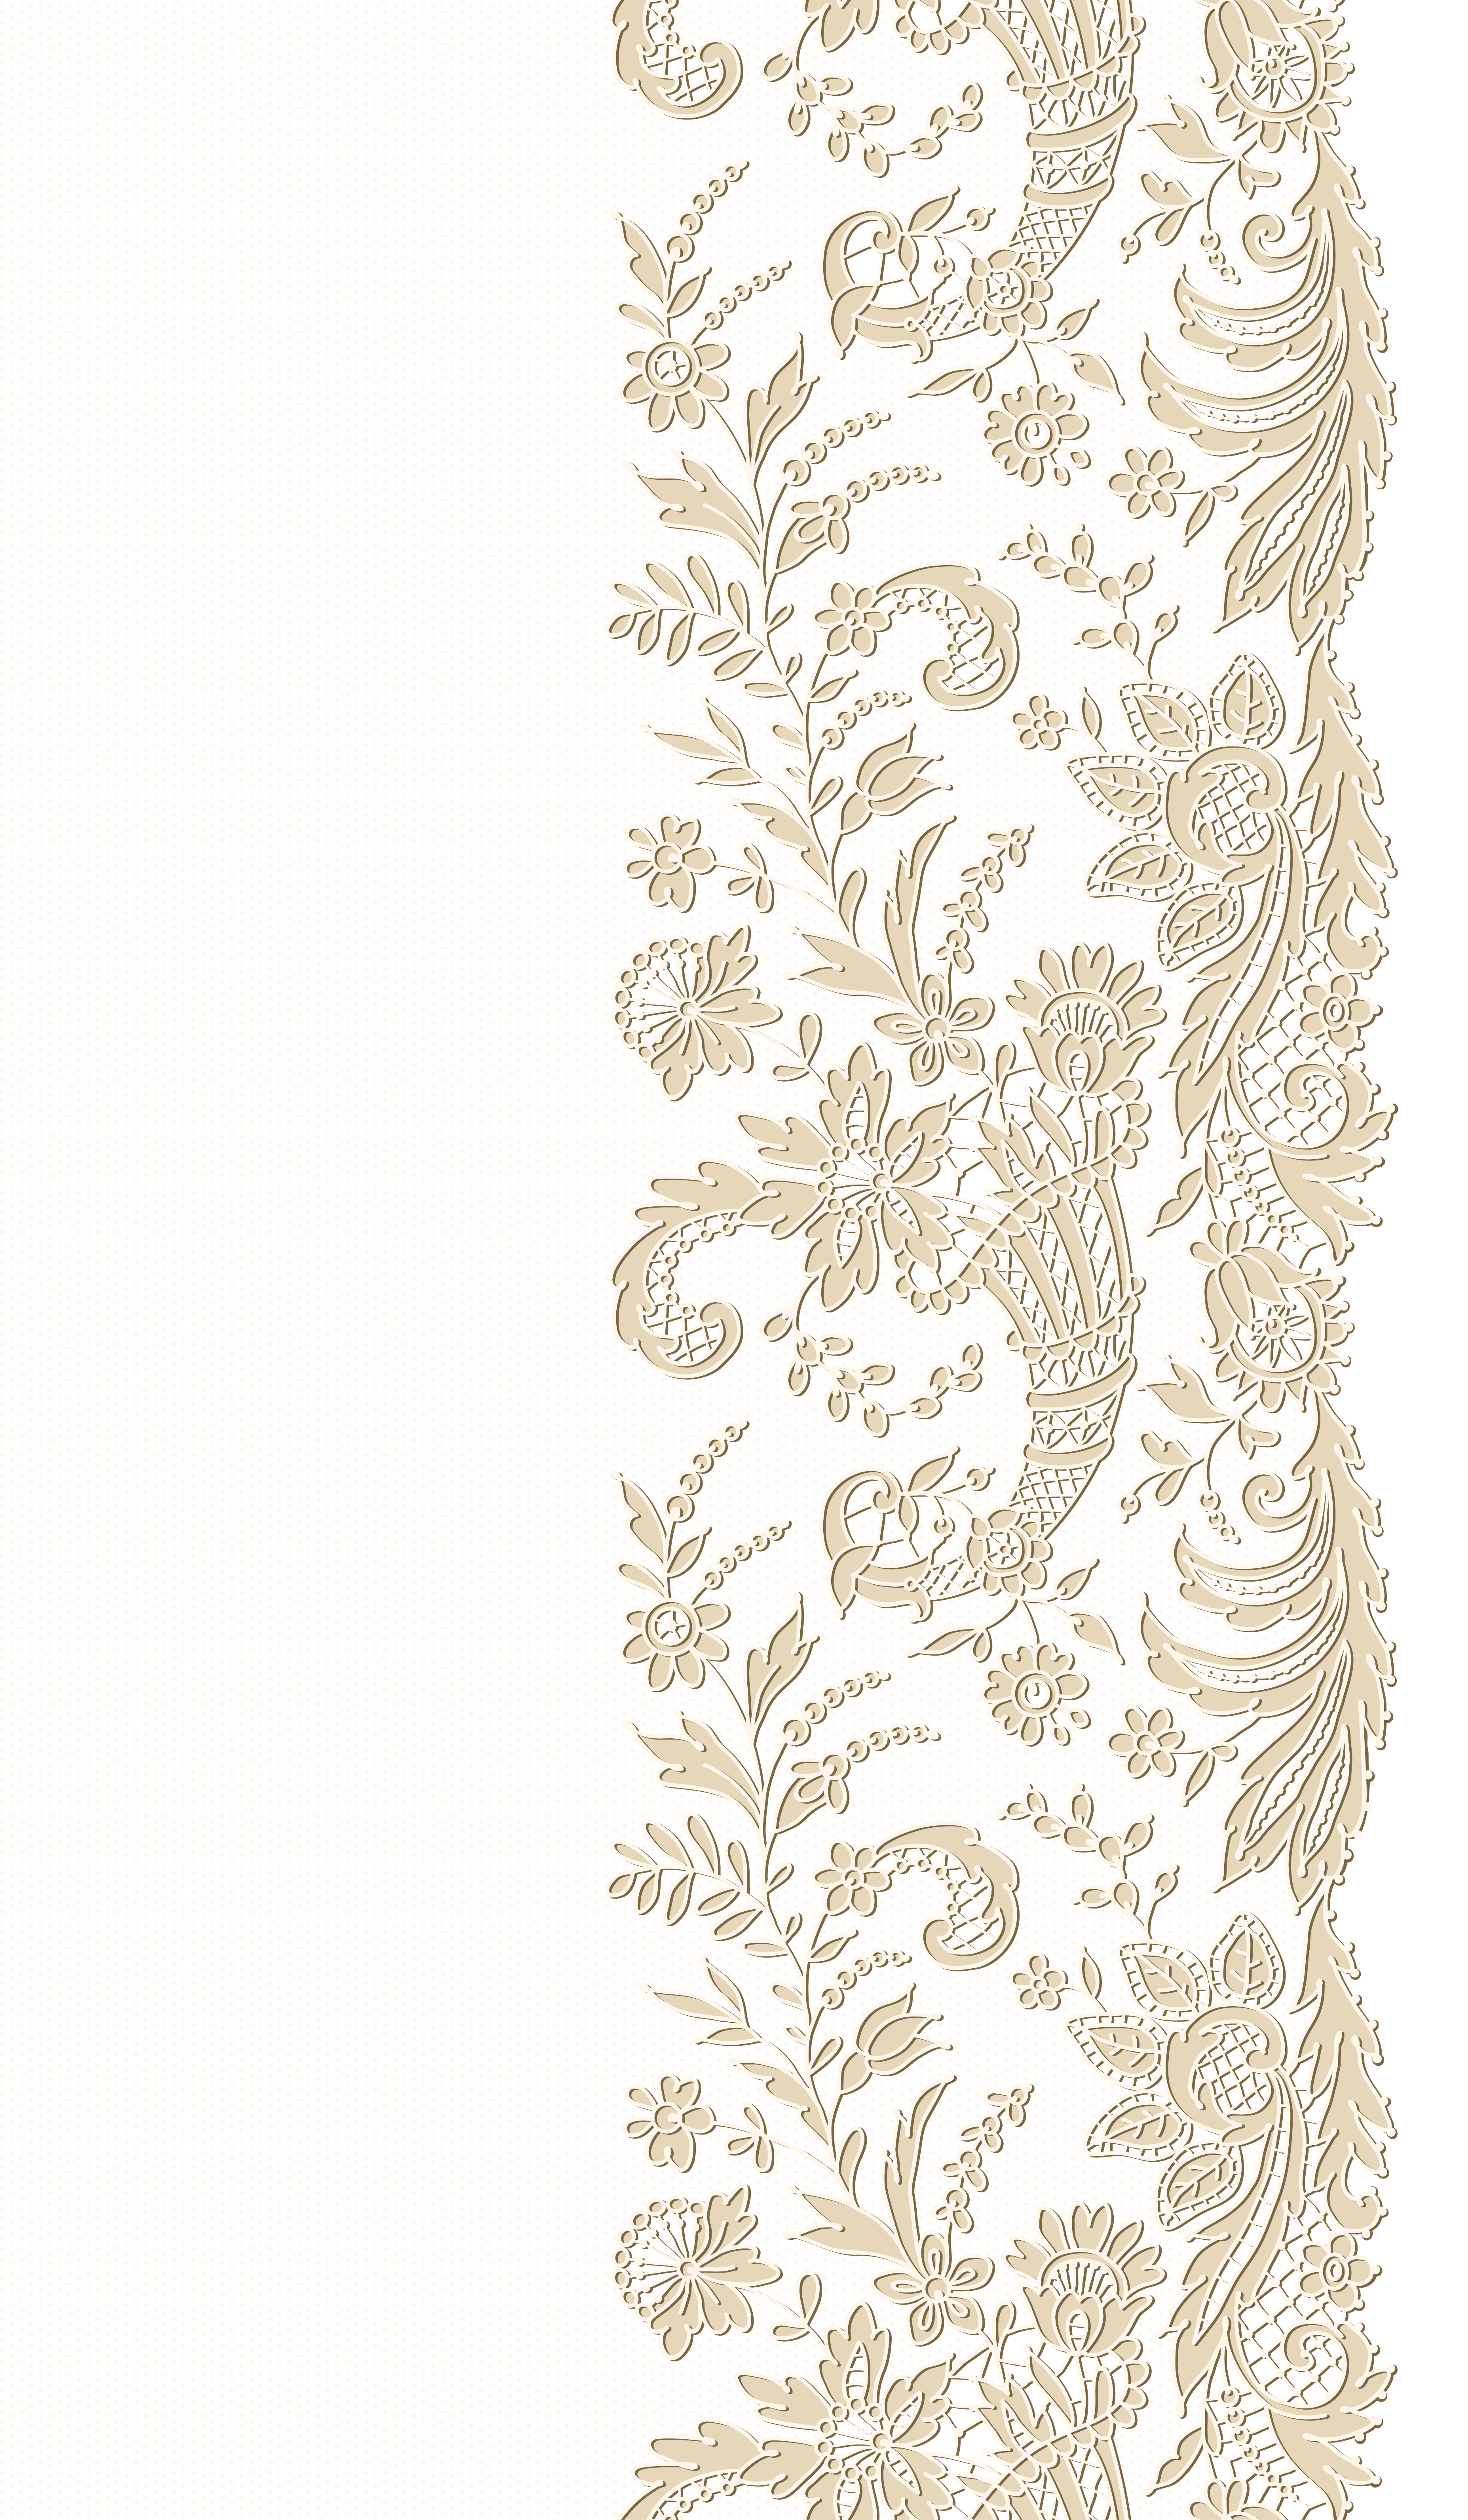 Lace Border Template Png & Free Lace Border Template.png ...